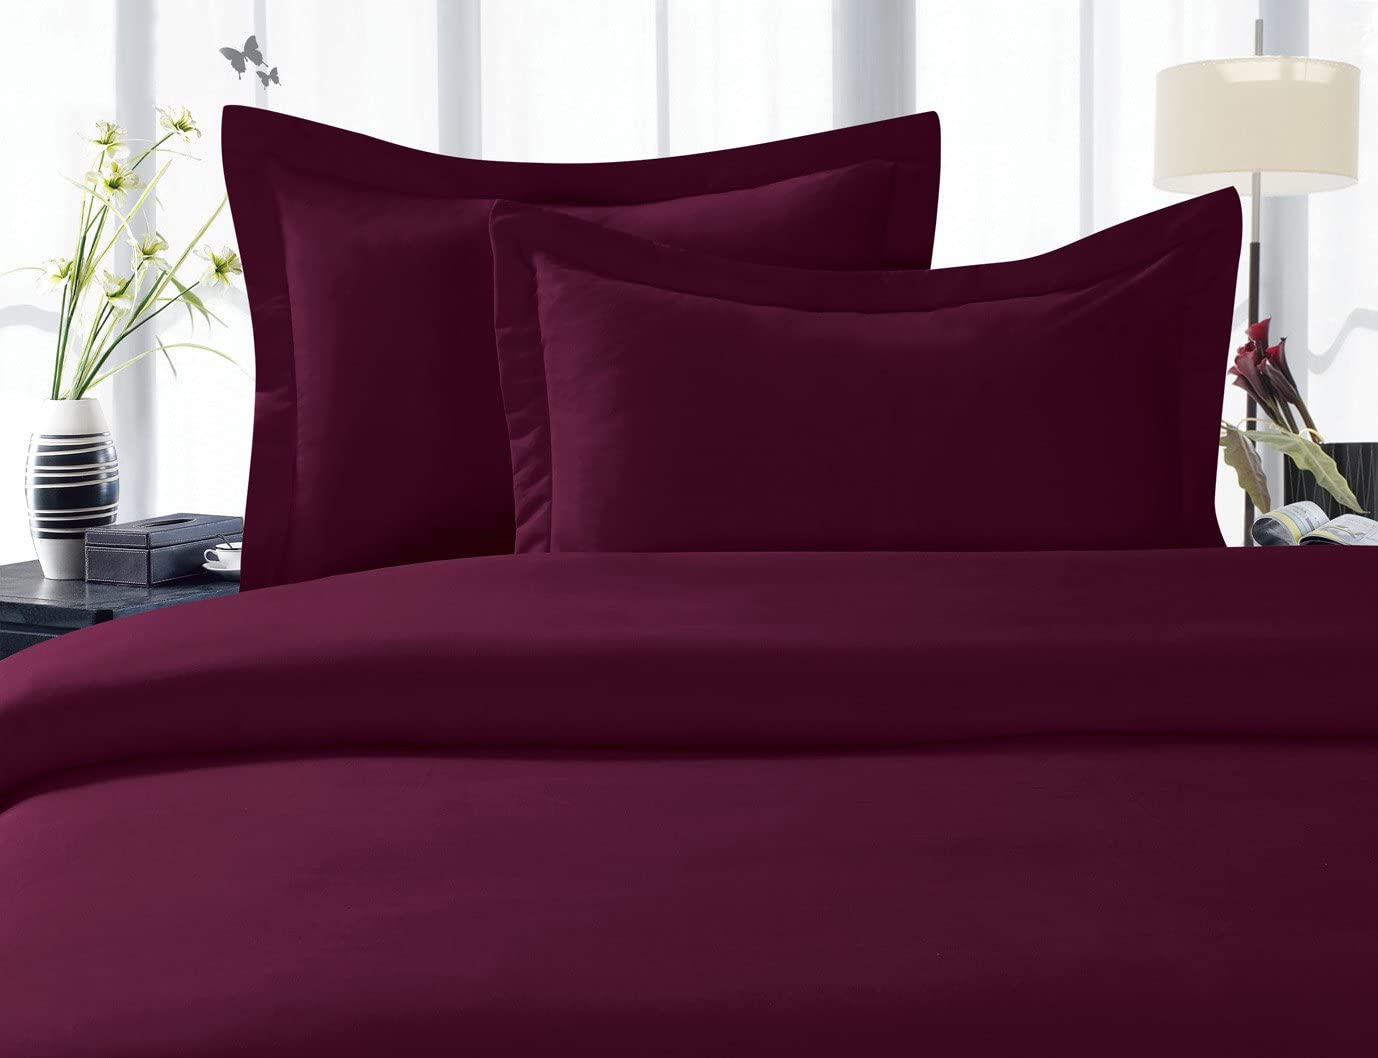 Elegant Comfort 1500 Thread Count Egyptian Quality 3 Piece Wrinkle Free and Fade Resistant Luxurious Duvet Cover Set, Full/Queen, Eggplant Purple